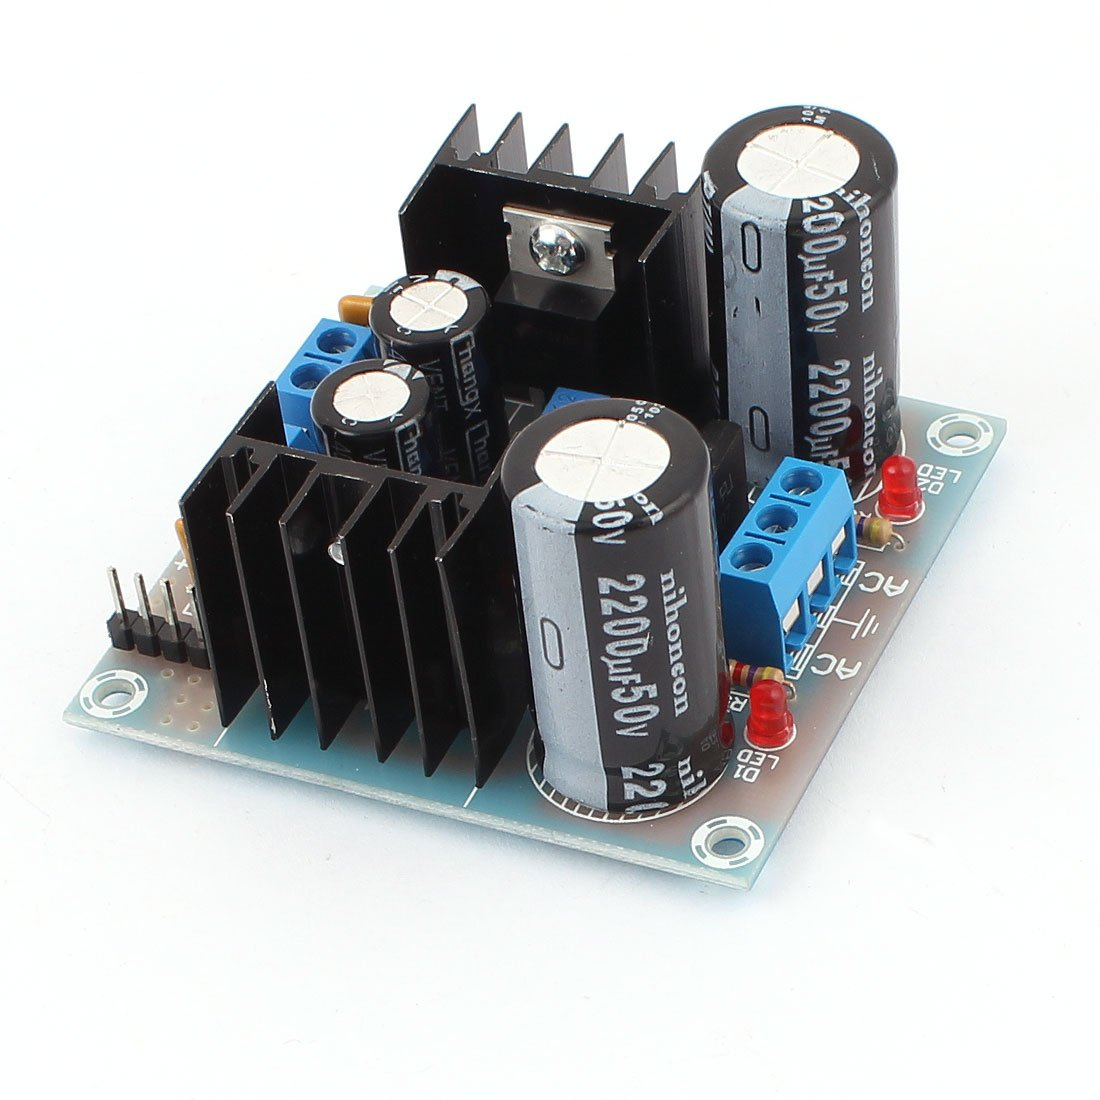 Lm317 Lm337 Ac To Dc Dual Power Supply Voltage Electronics Using Lm 317 Electronic Circuits And Diagram